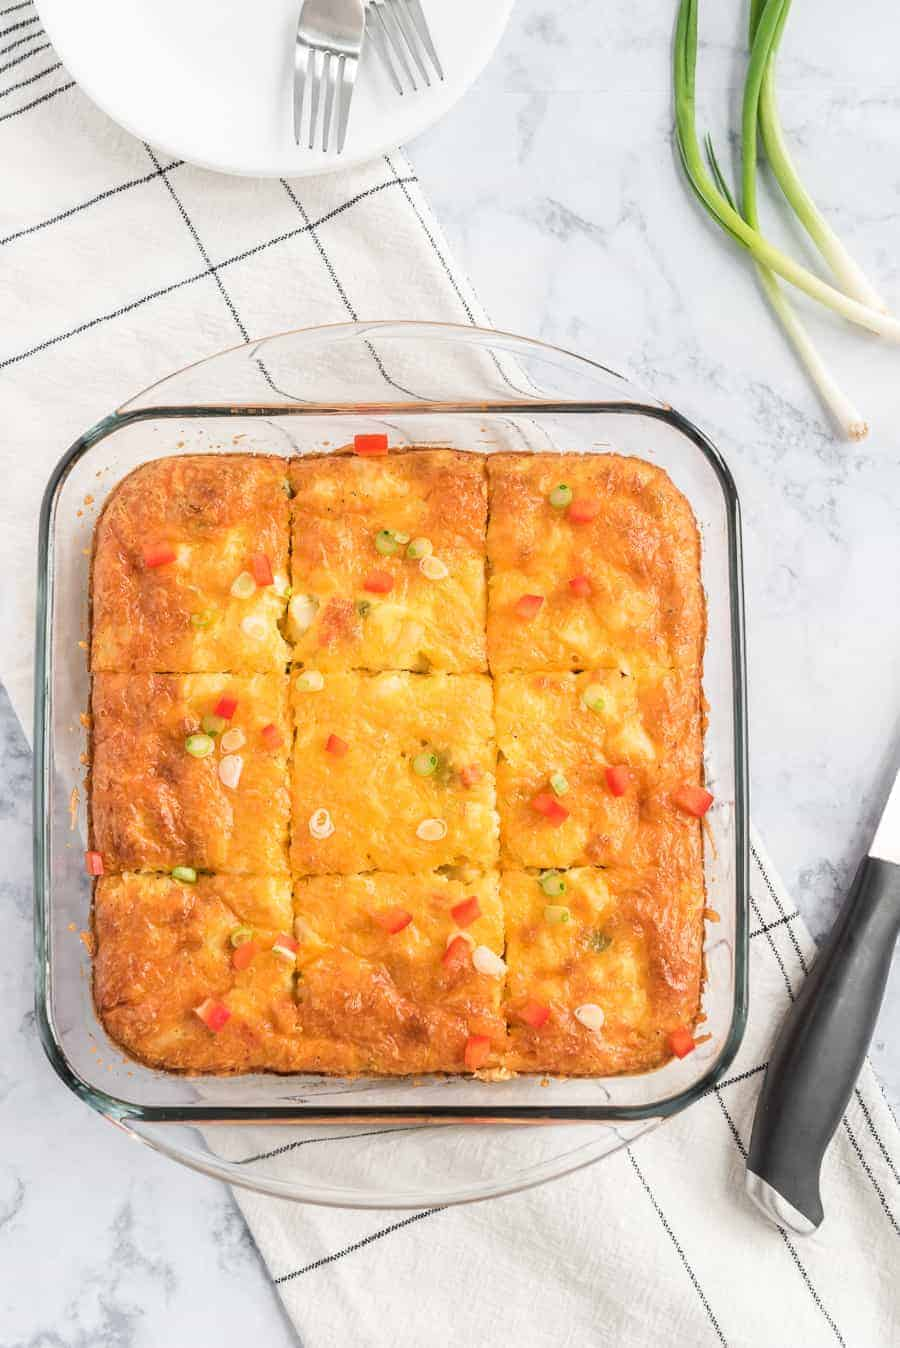 This Easy Egg and Potato Breakfast Casserole will transform your morning with its scrumptious and simple list of ingredients. Eggs, potatoes, and shredded cheddar cheese round out the tasty flavors, with options to personalize it using bacon, sausage, veggies, or garlic powder!